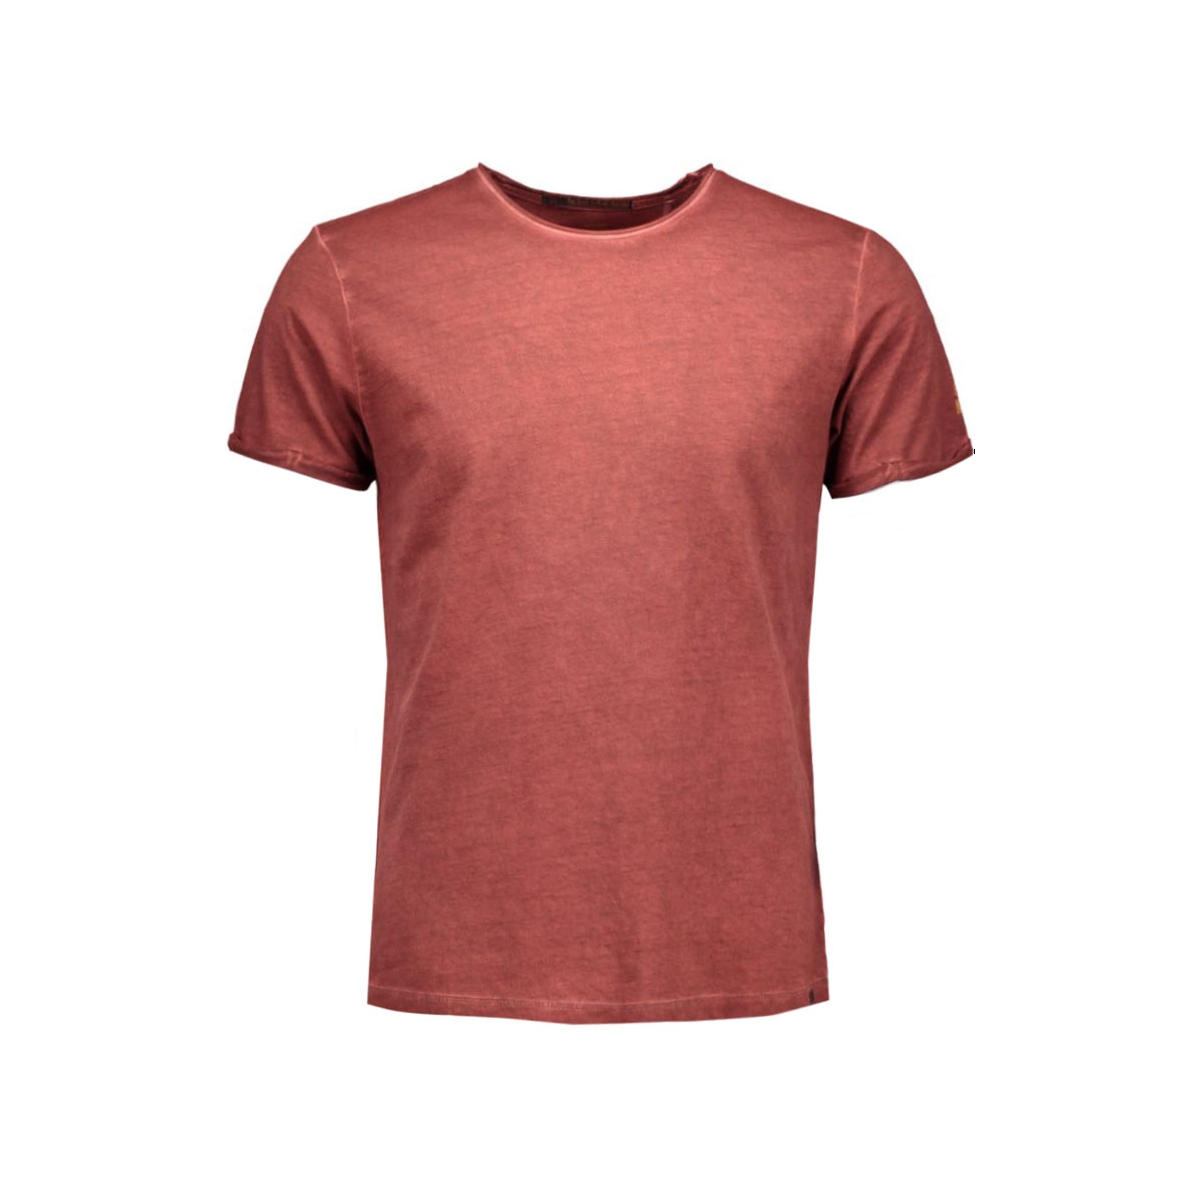 78320715 no-excess t-shirt 160 brick